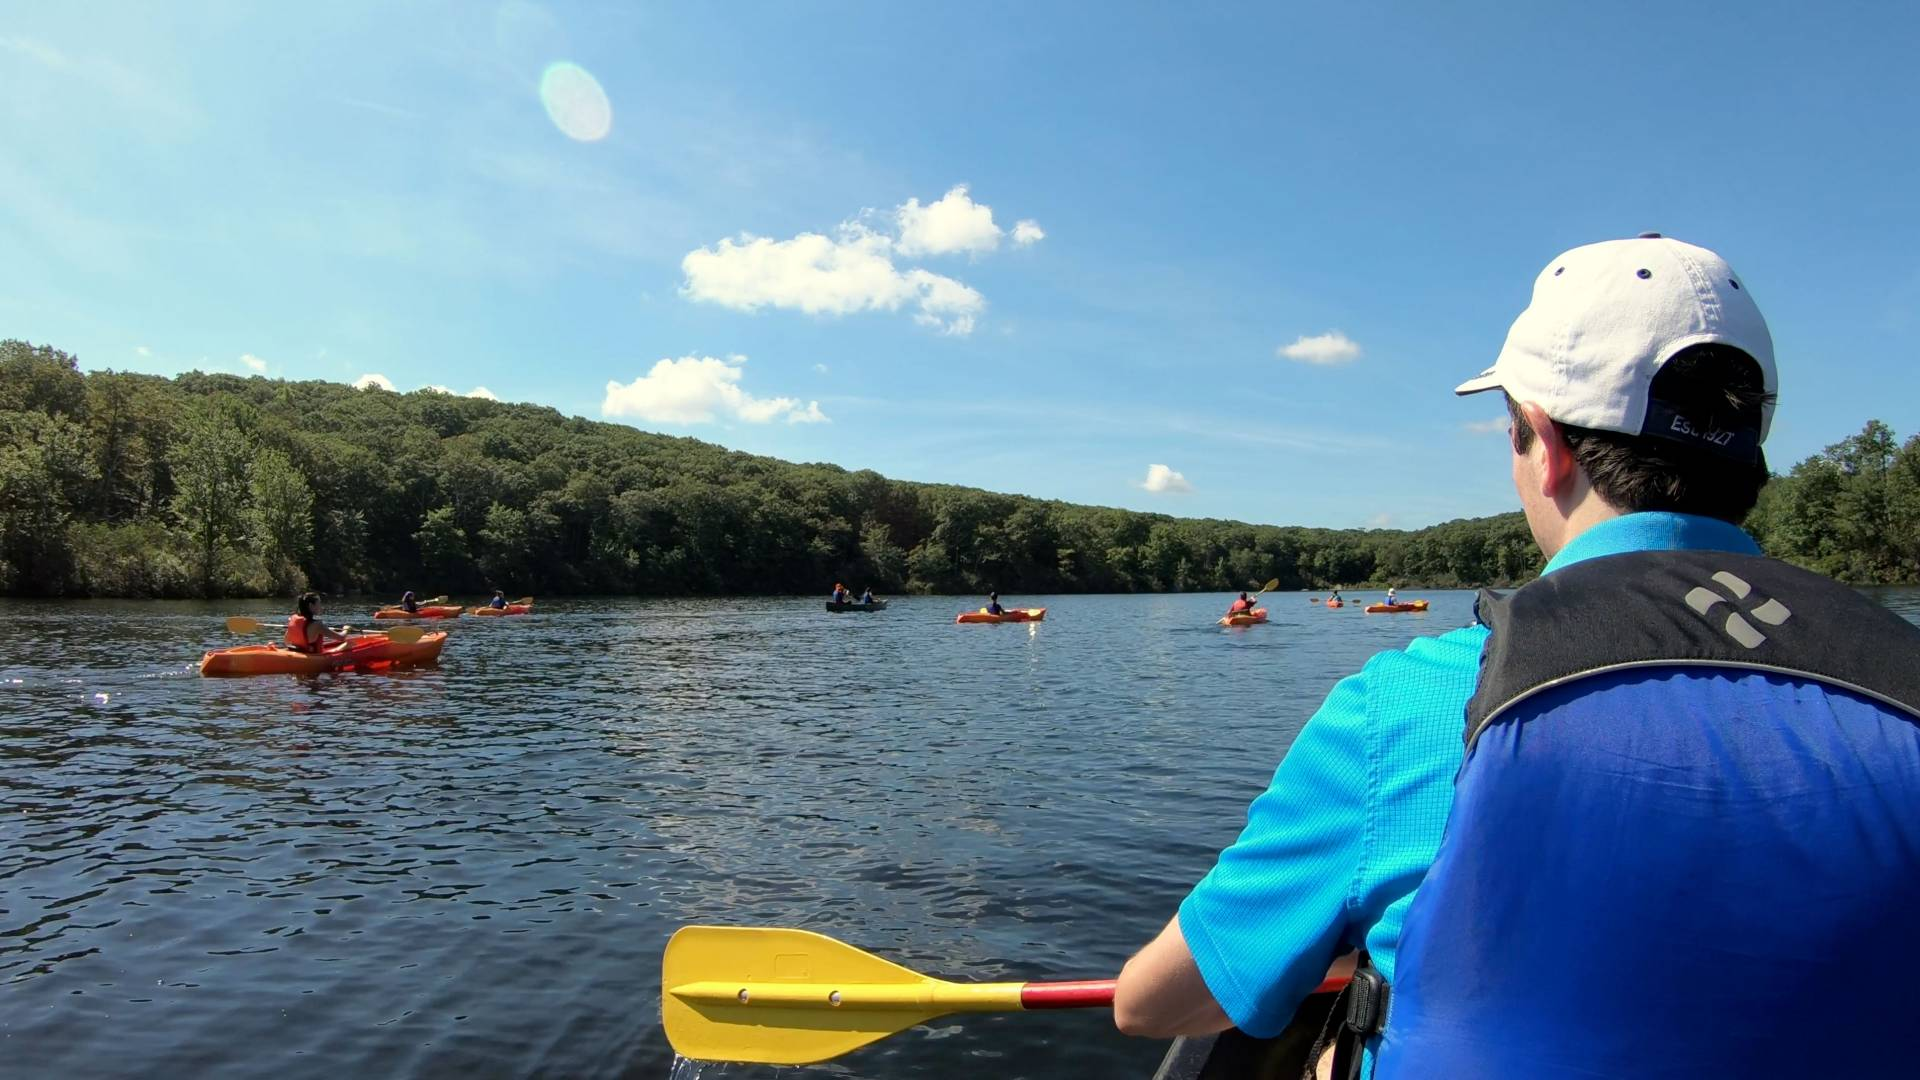 Students canoeing and kayaking on lake in Harriman State Park